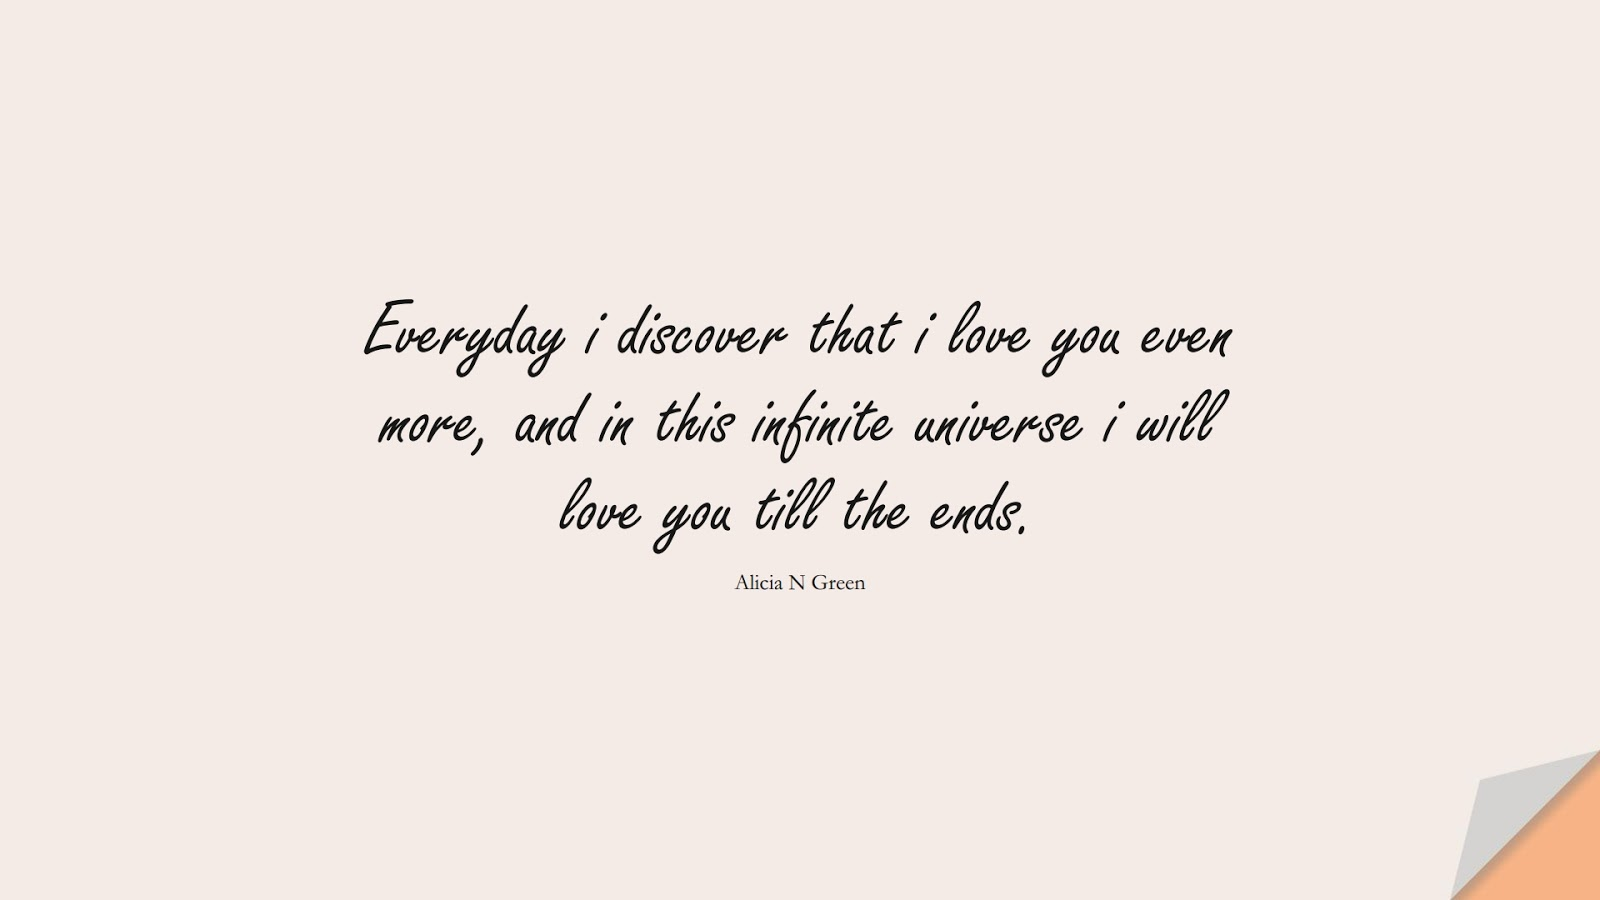 Everyday i discover that i love you even more, and in this infinite universe i will love you till the ends. (Alicia N Green);  #LoveQuotes